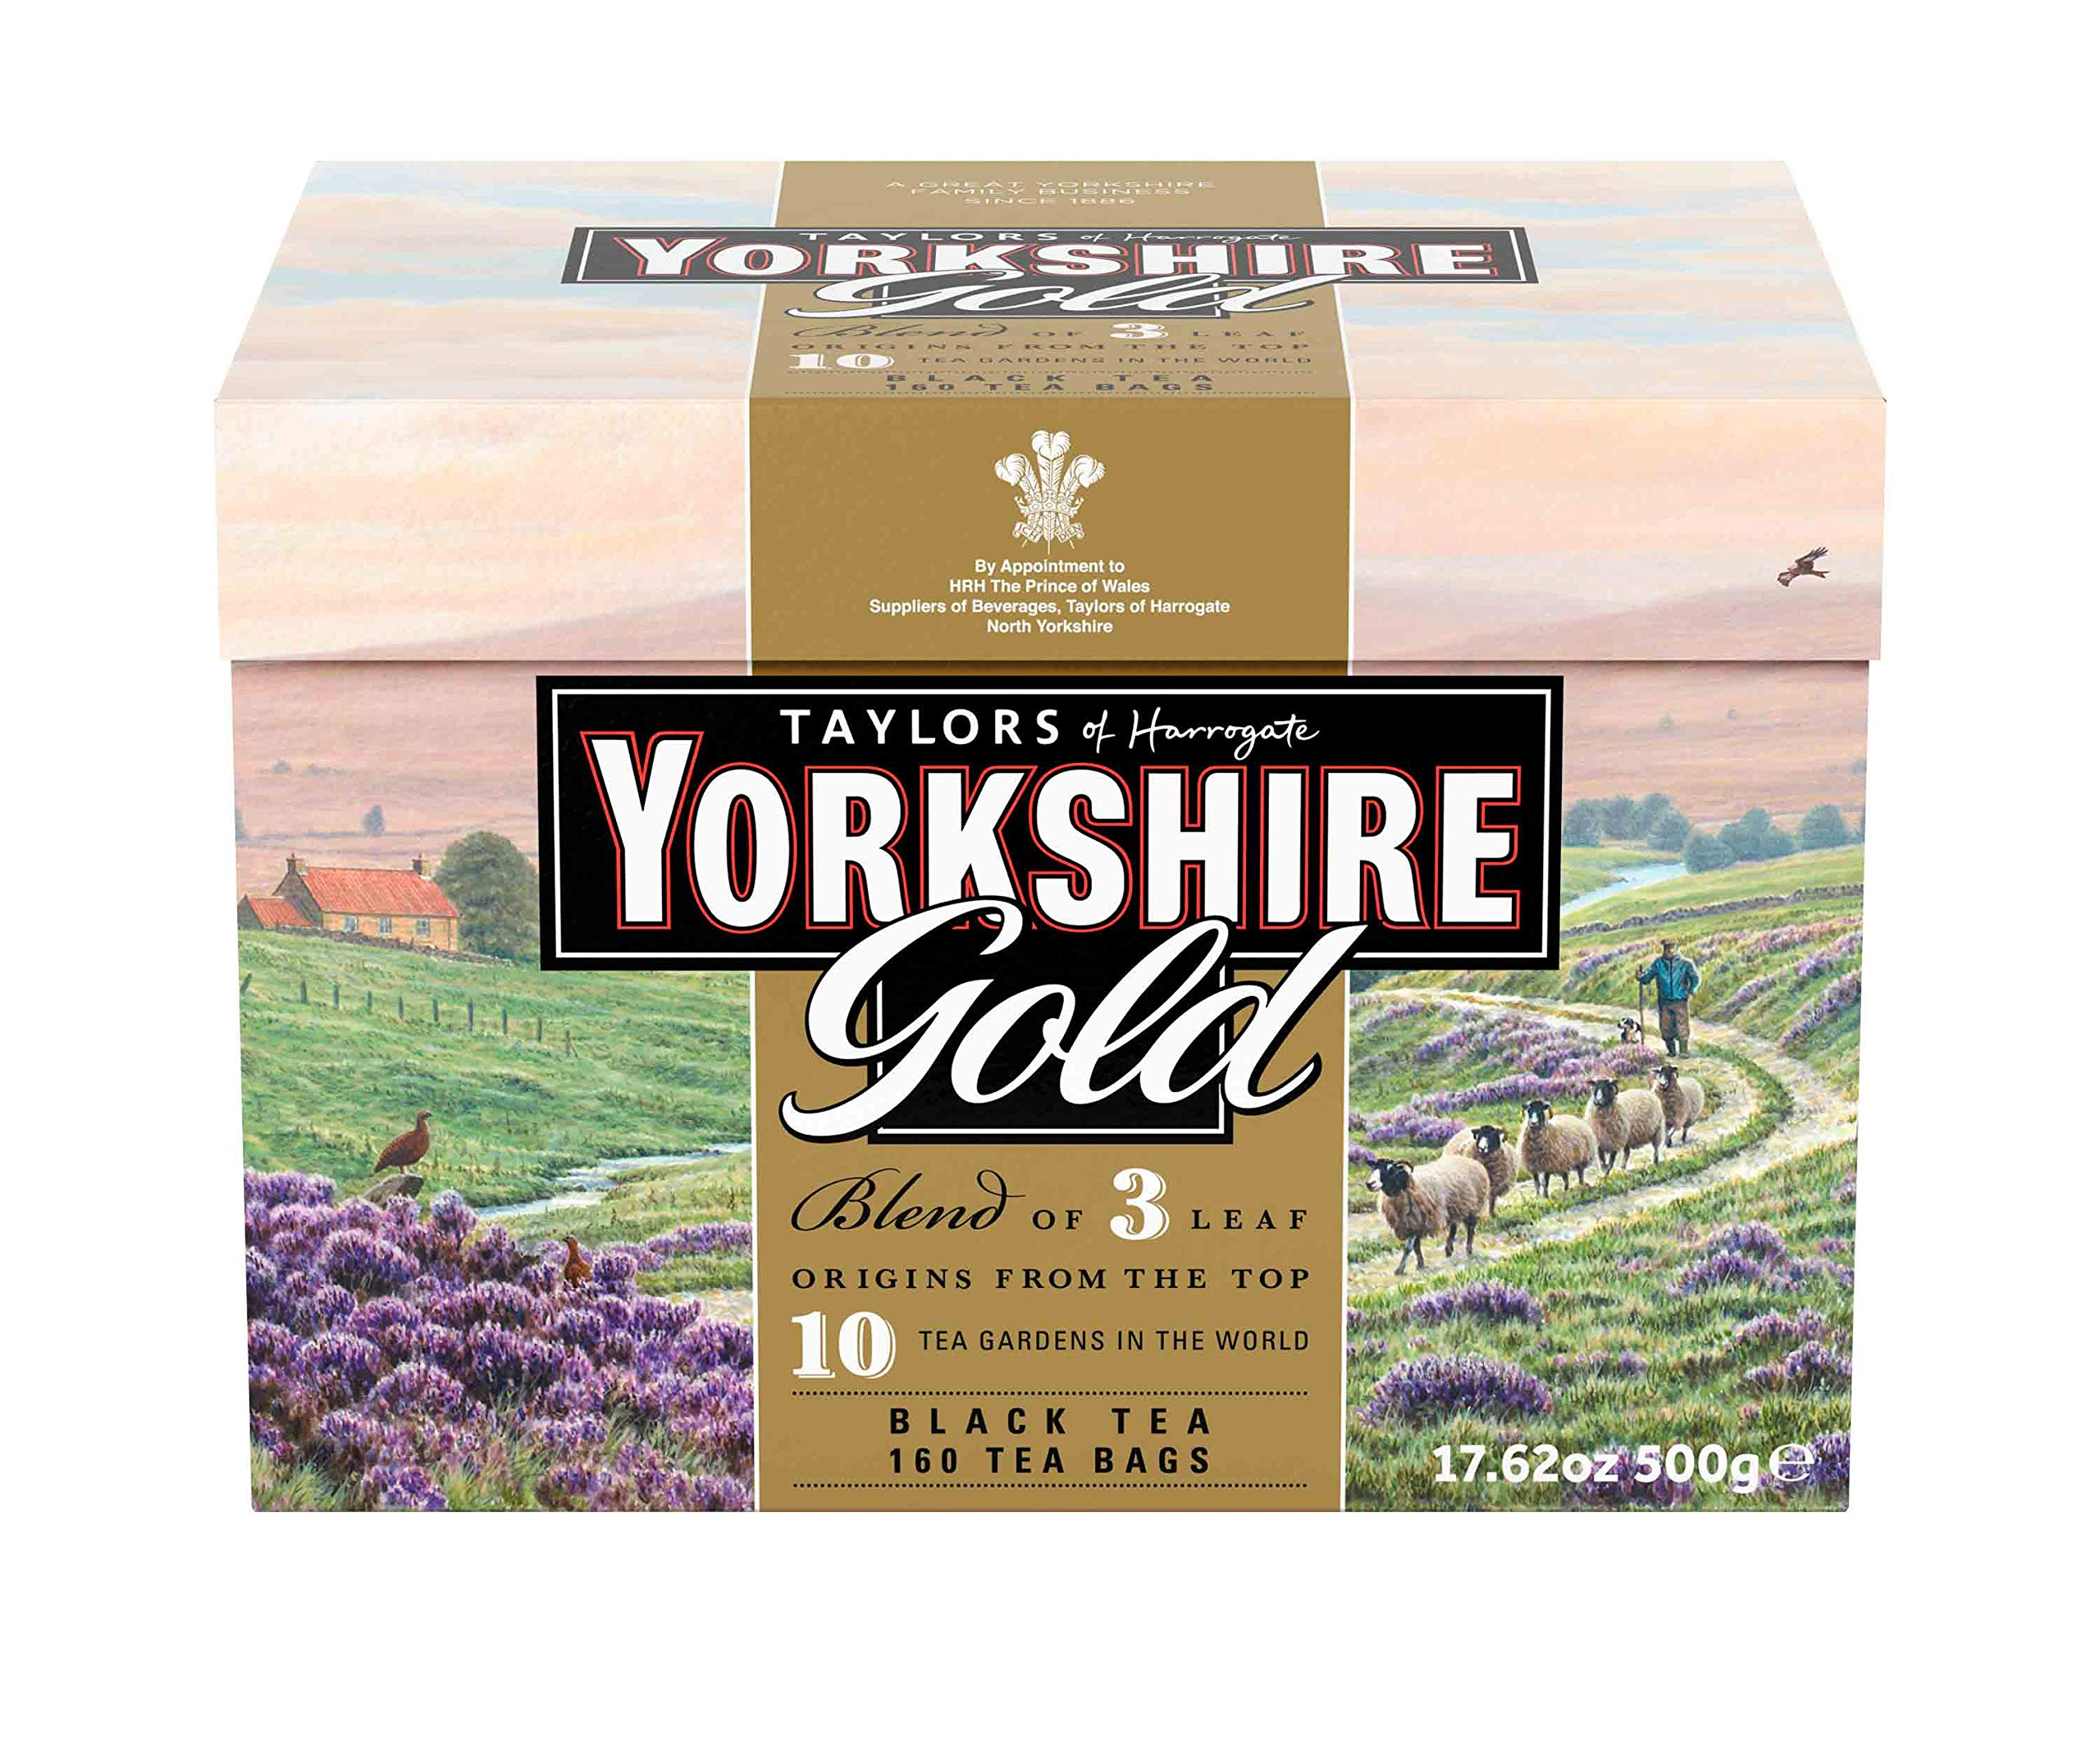 Taylors of Harrogate Yorkshire Gold, 160 Teabags (Pack of 6)